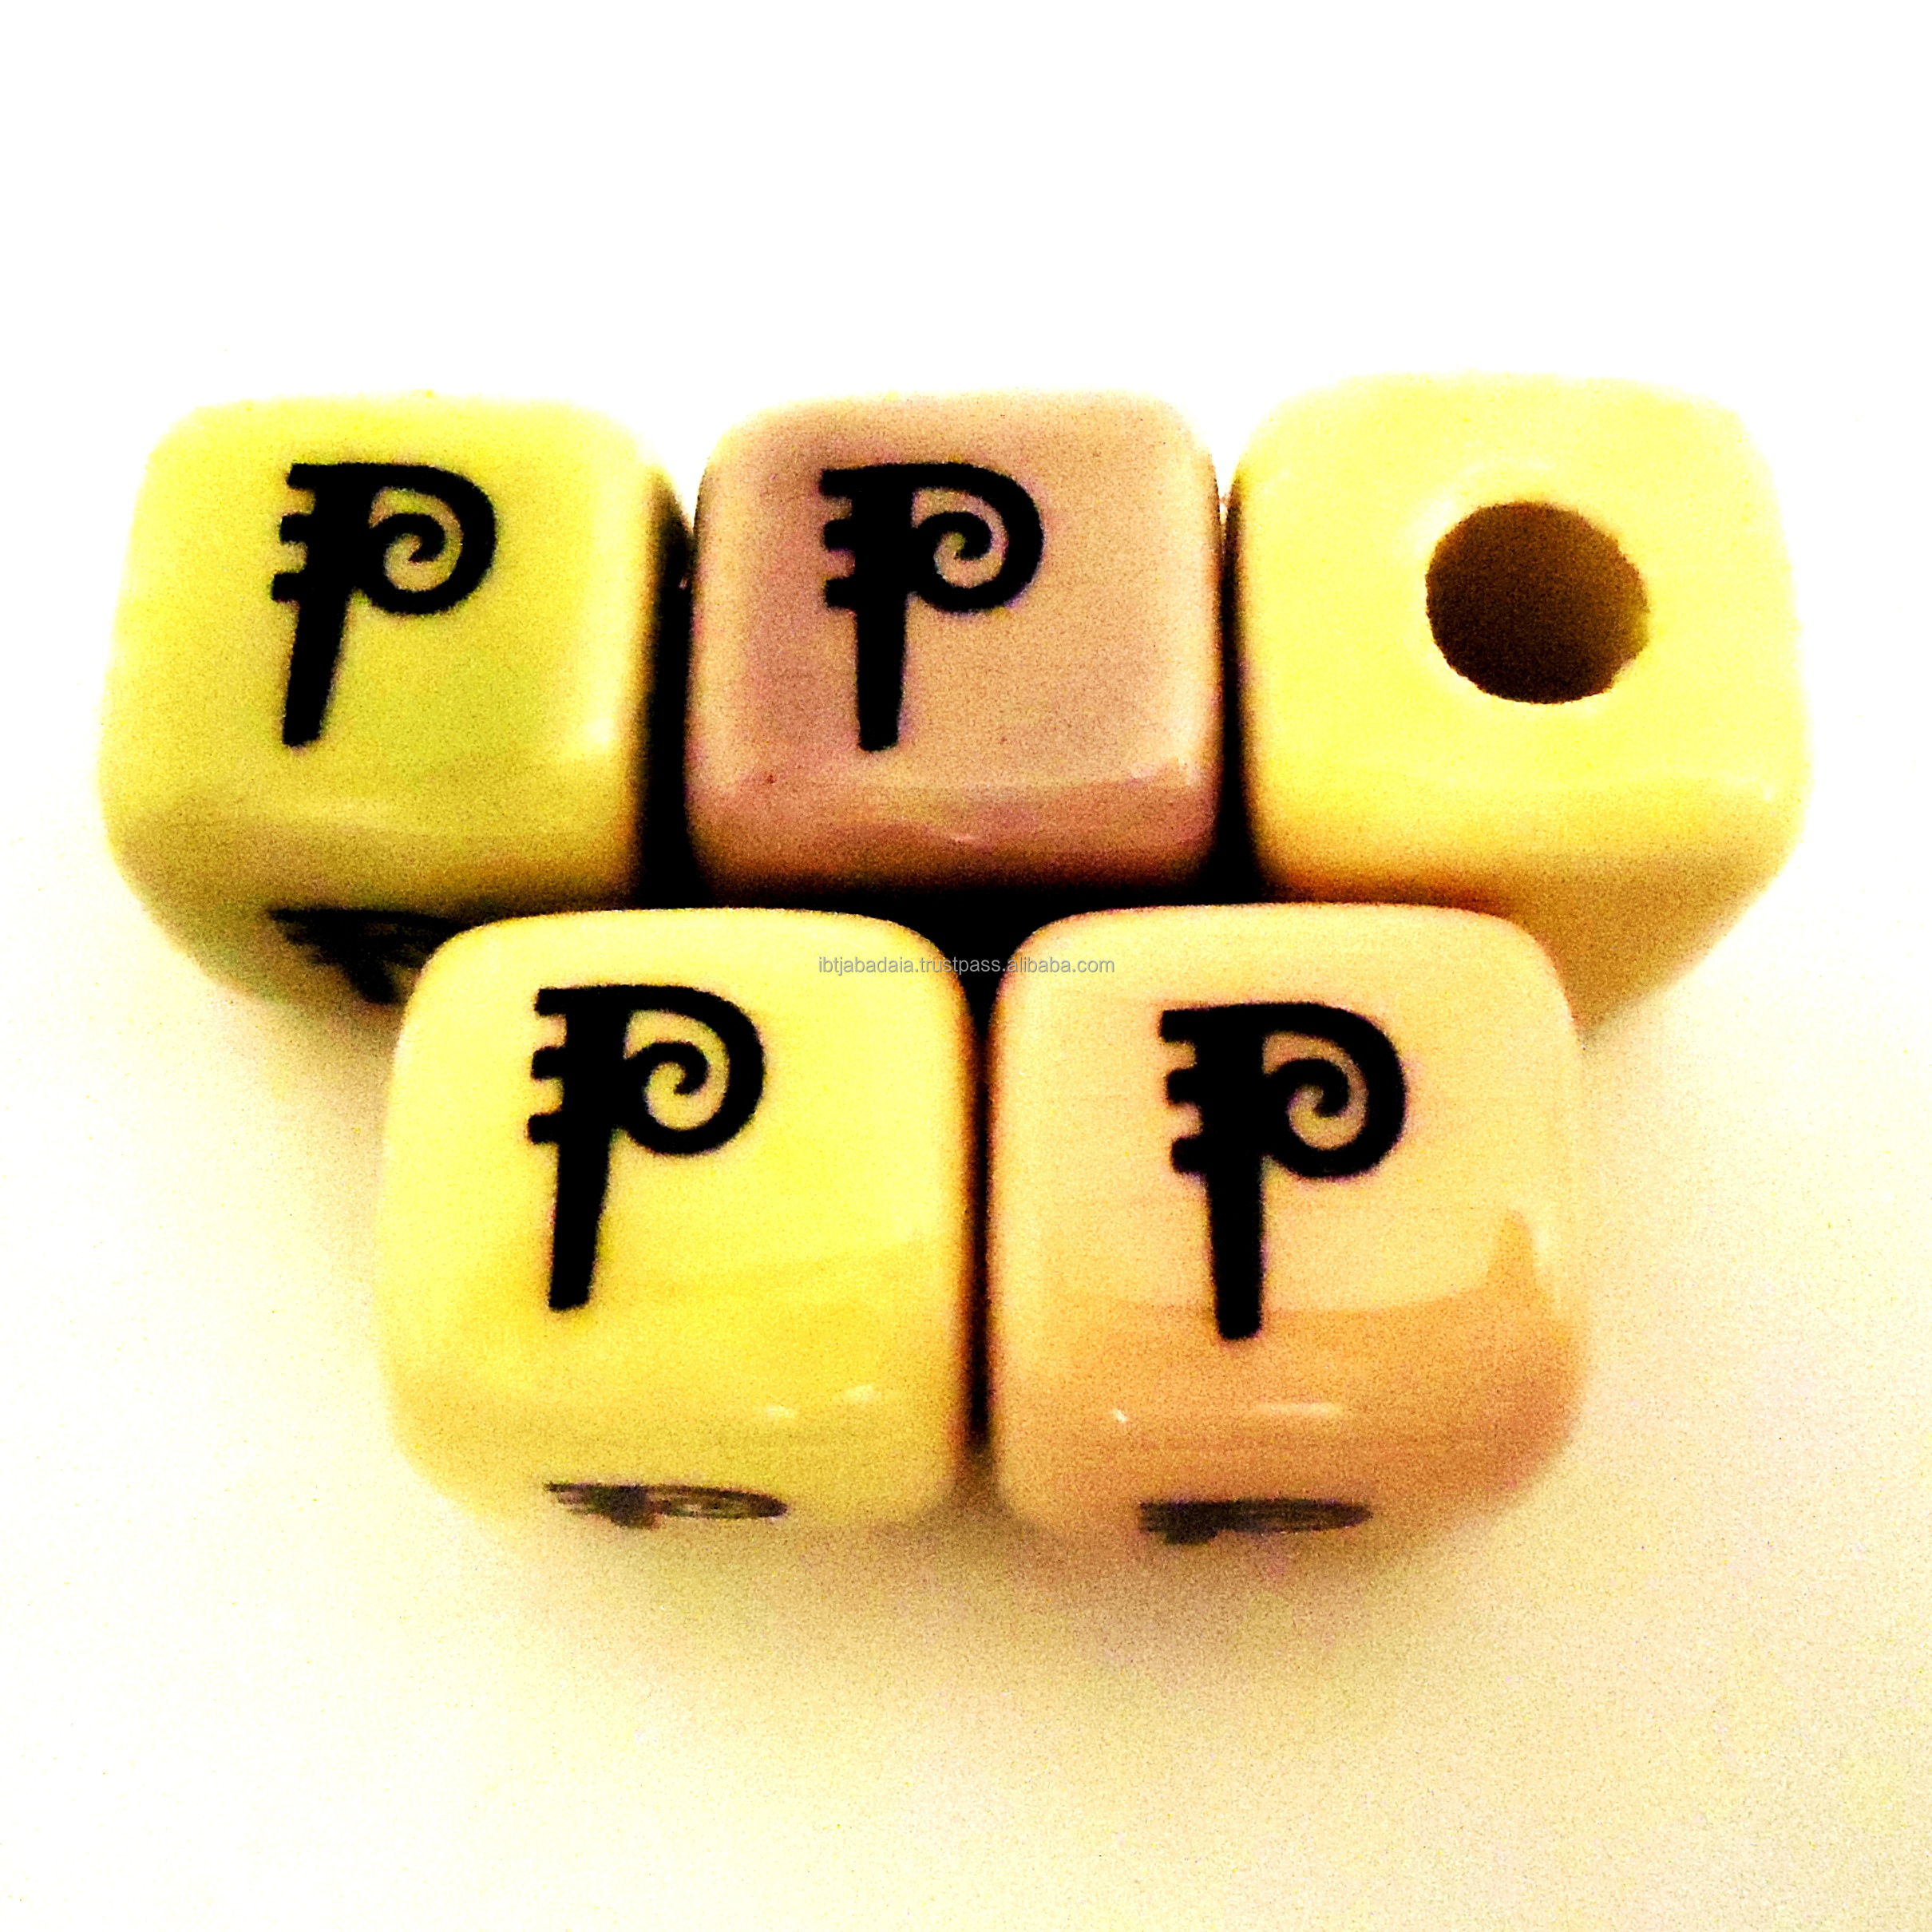 648e76802047b Ceramic Letter Beads For Jewelry Making,Alphabet Pastel Color Ceramic P  Letter - Buy Unique Beads For Jewelry Making,Cube Alphabet Letter  Beads,Single ...